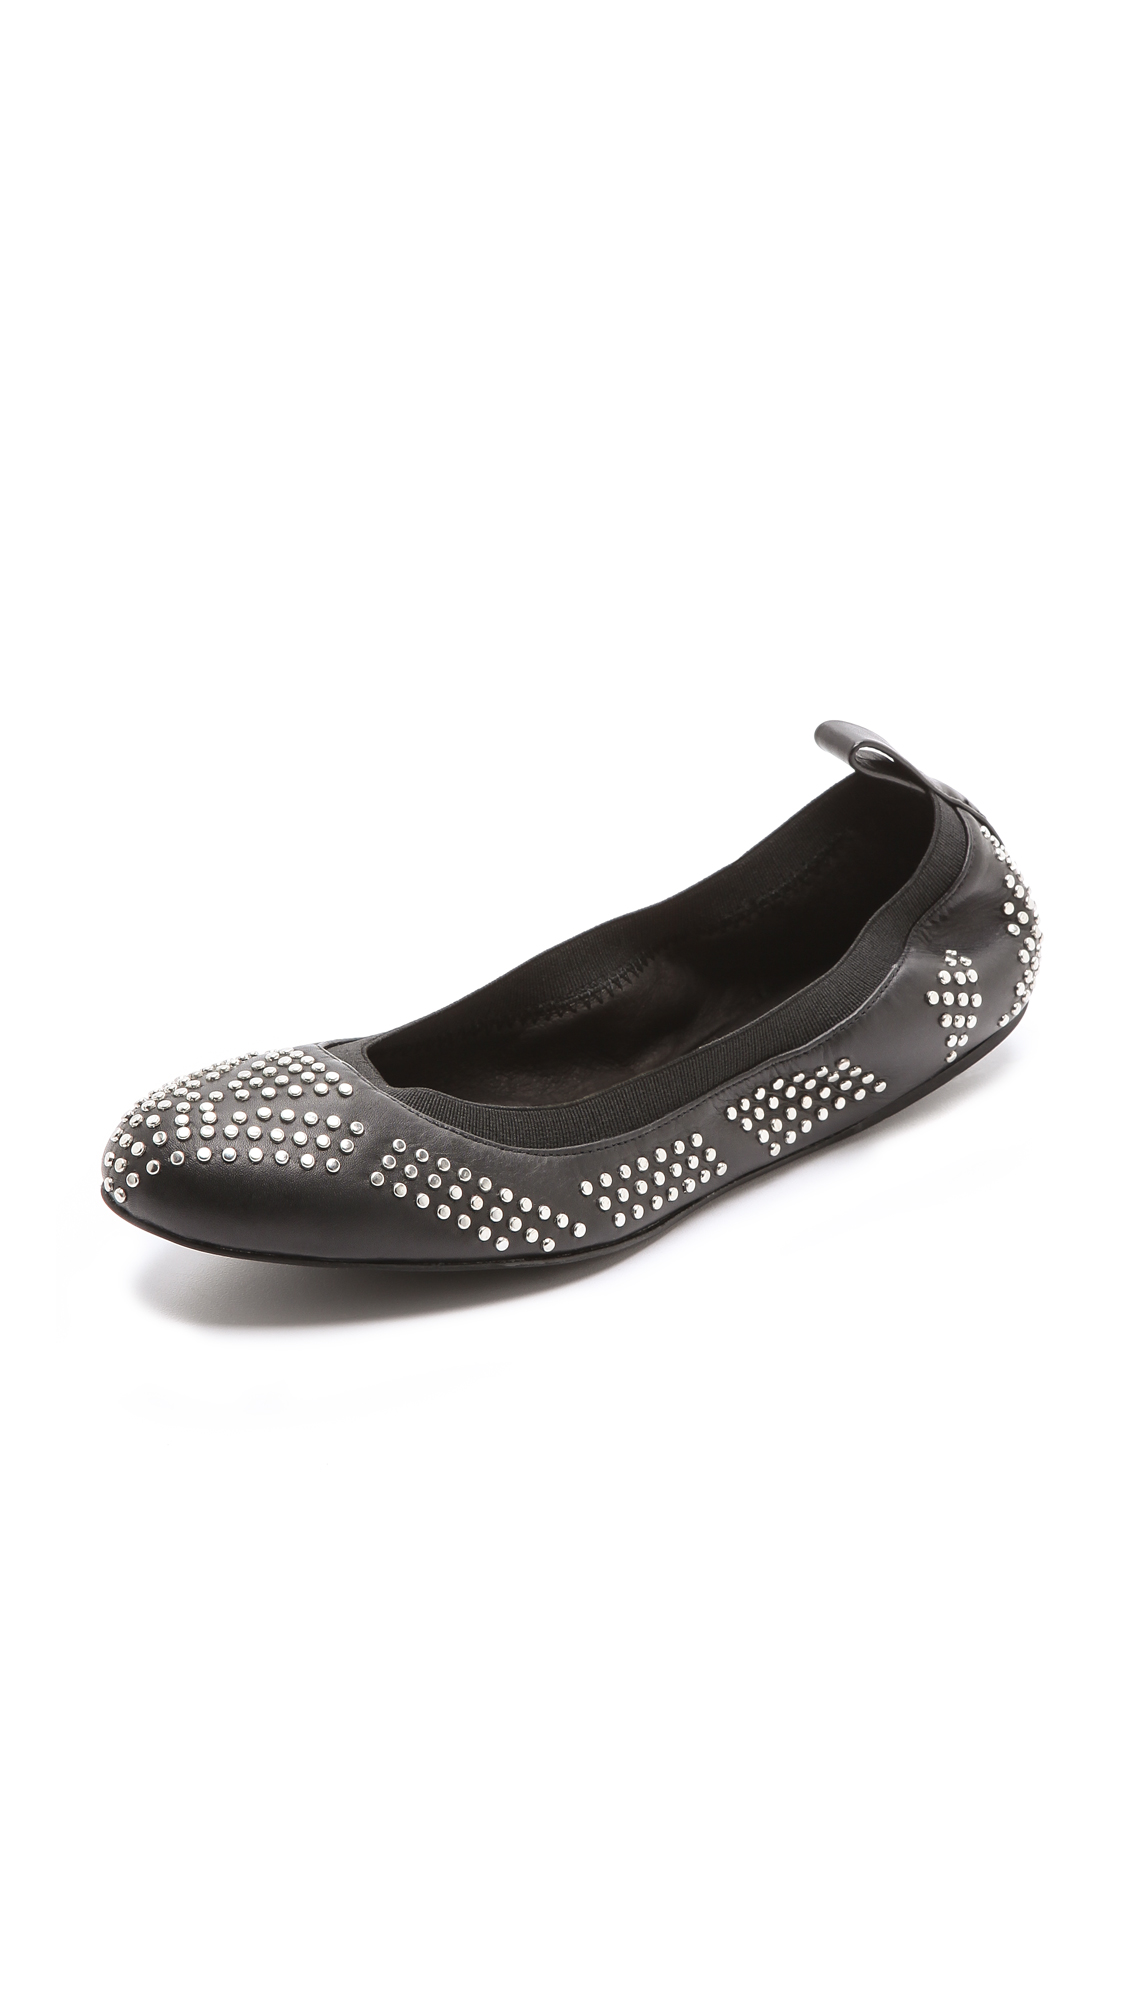 lyst see by chlo studded elastic ballet flats in black. Black Bedroom Furniture Sets. Home Design Ideas